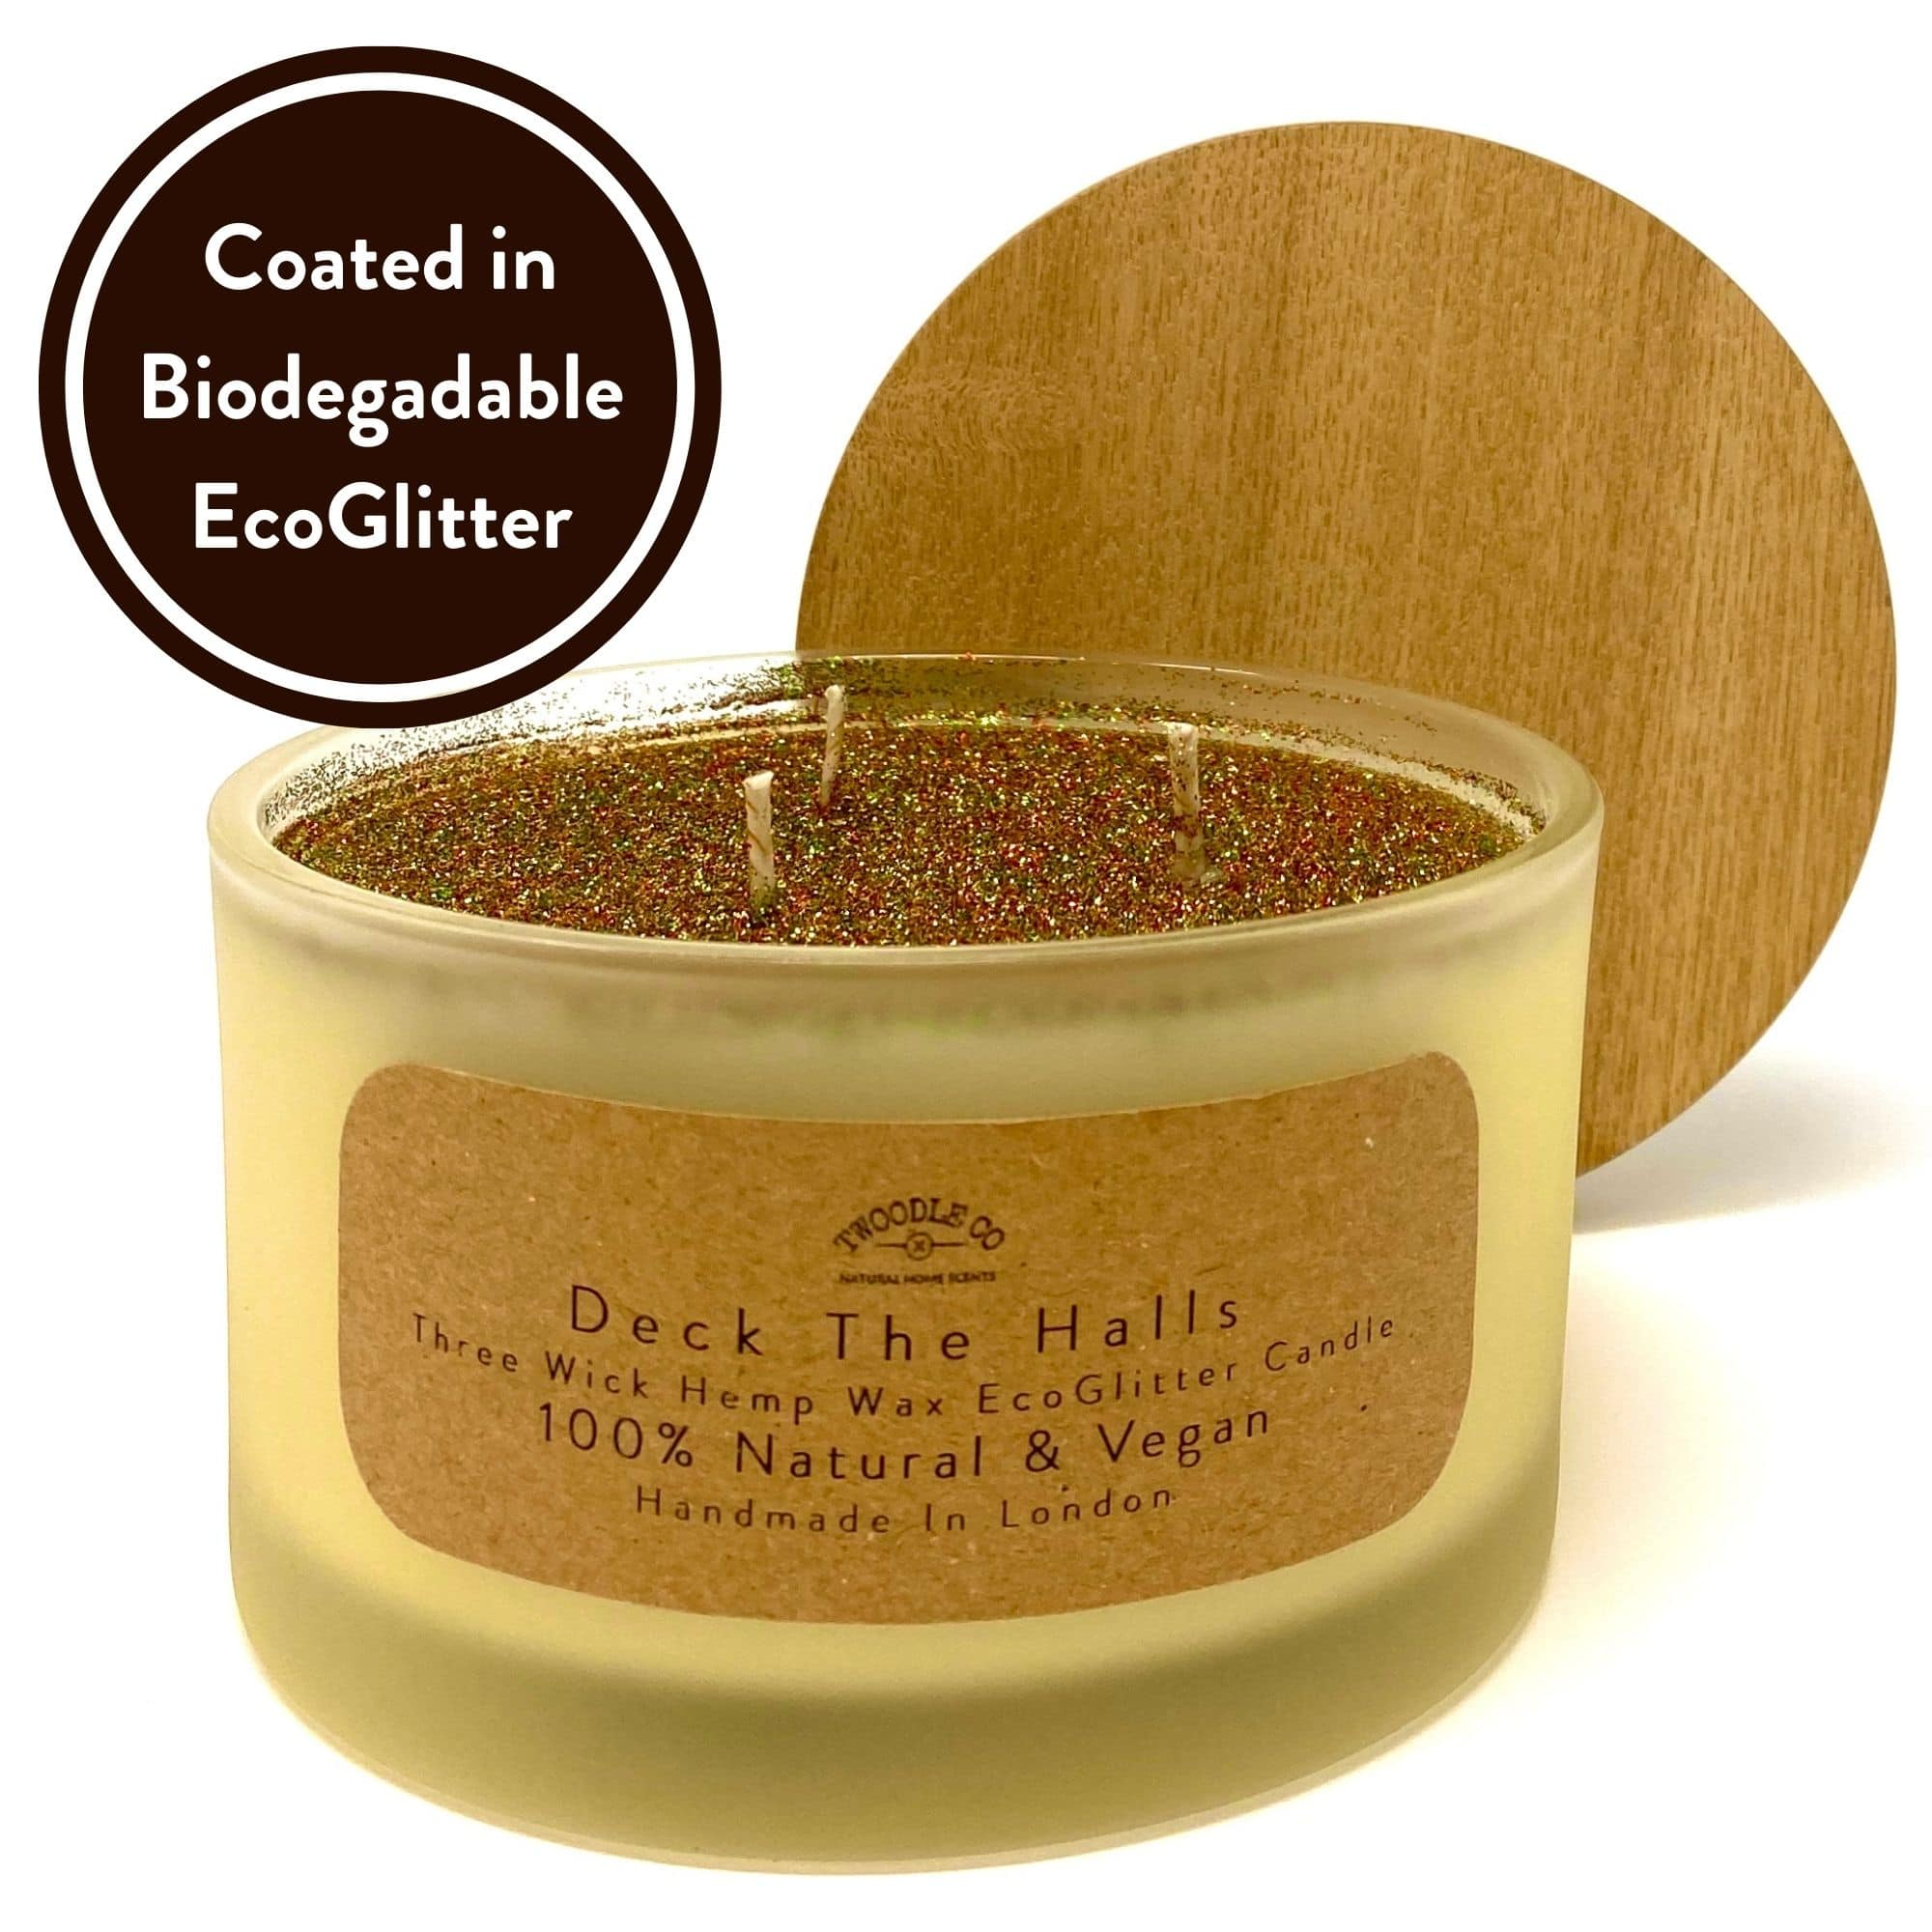 Deck The Halls Three wick scented candle coated in biodegradable Eco Glitter by Twoodle Co Natural Home Scents